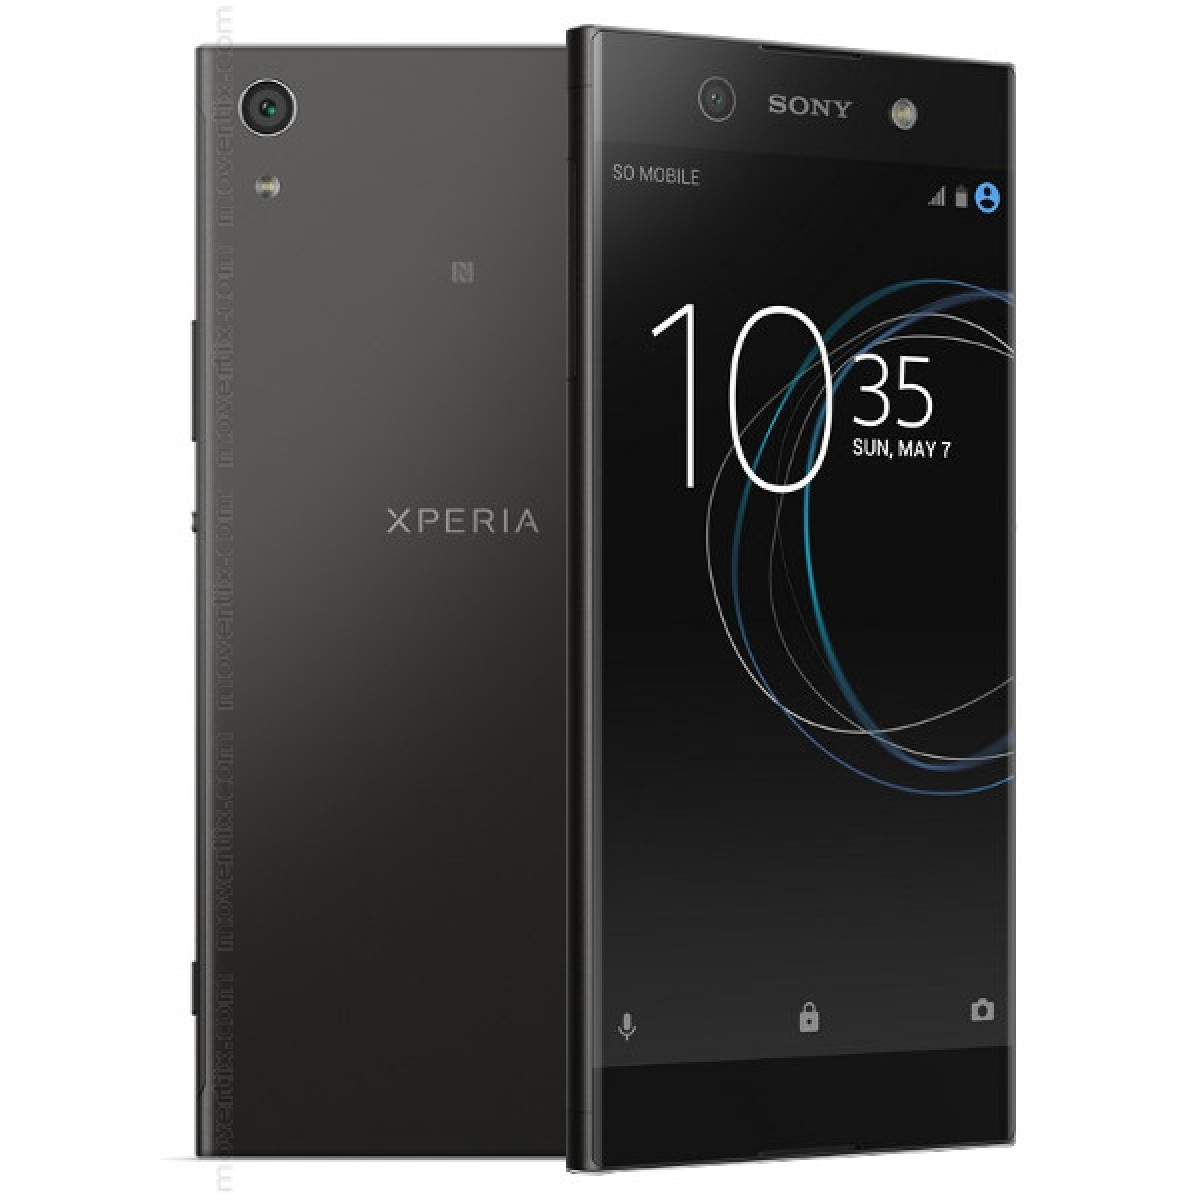 sony xperia xa1 ultra black 7311271583837 movertix mobile phones shop. Black Bedroom Furniture Sets. Home Design Ideas